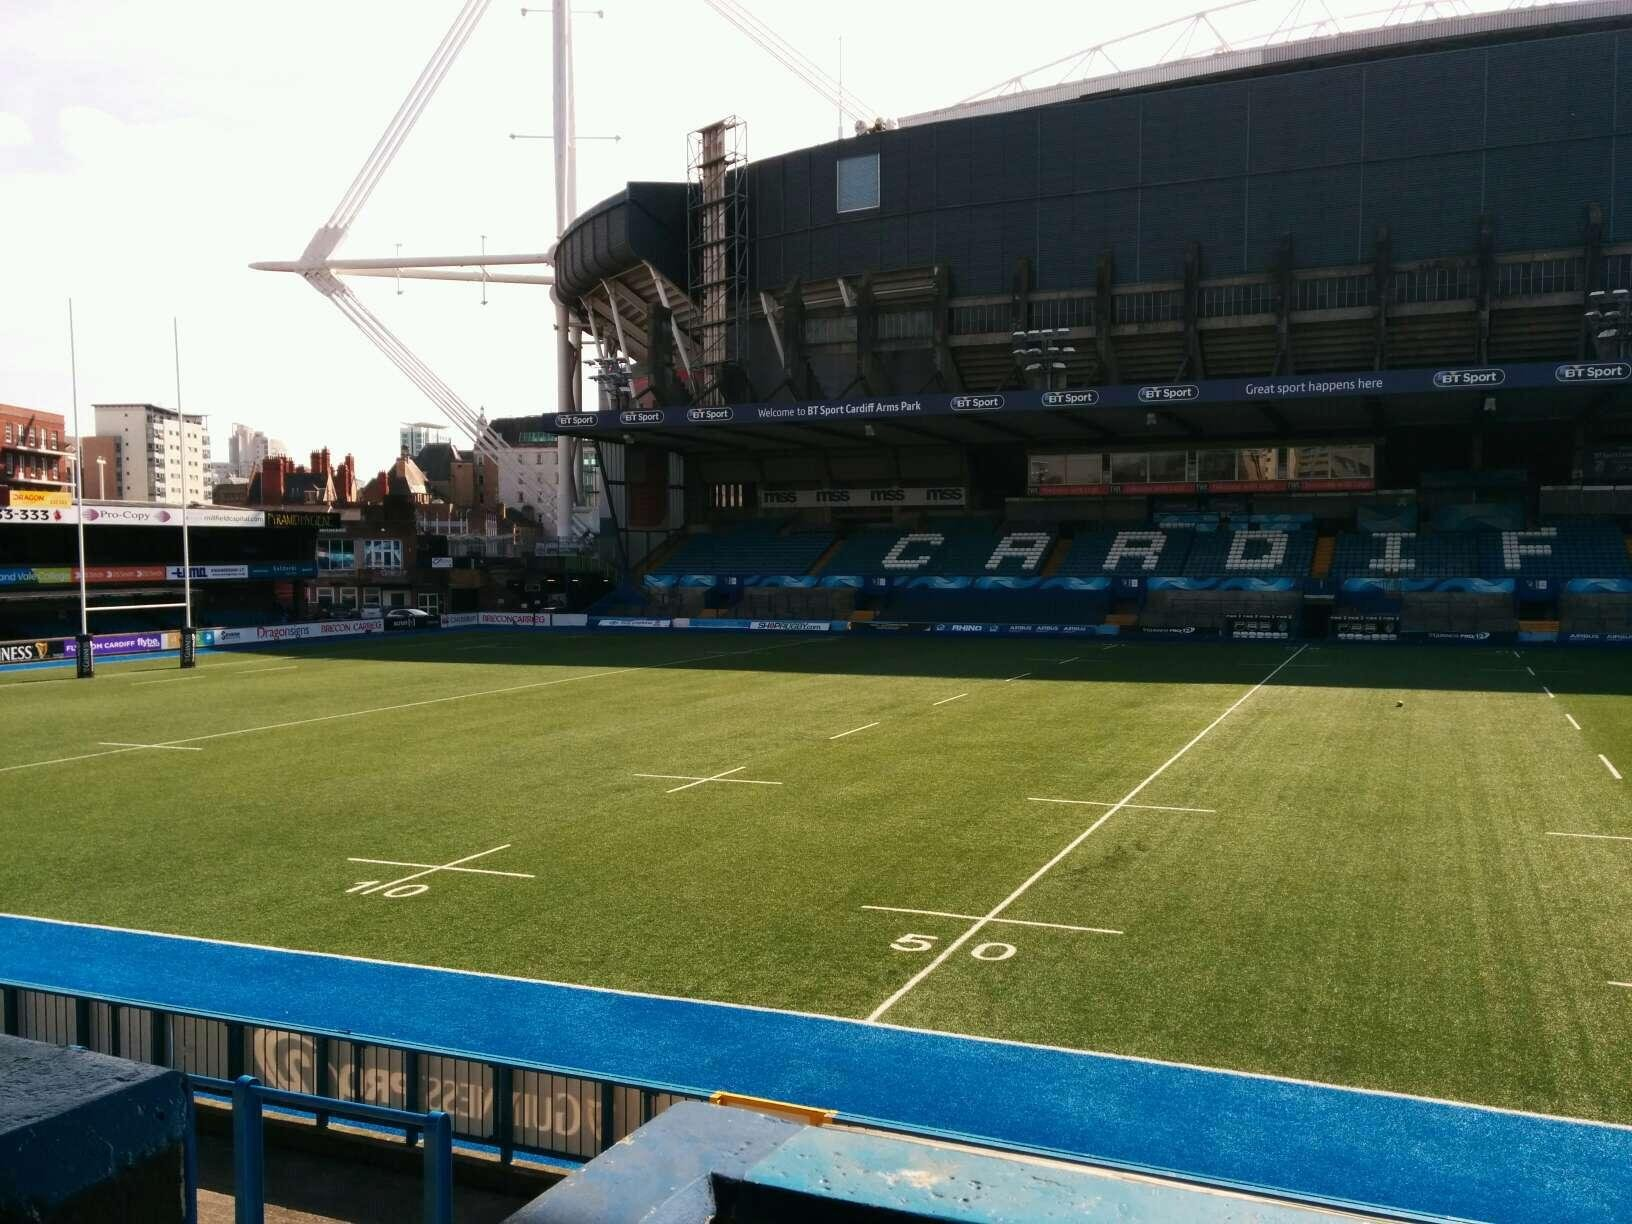 Cardiff Arms Park Section 13 Row b Seat 6